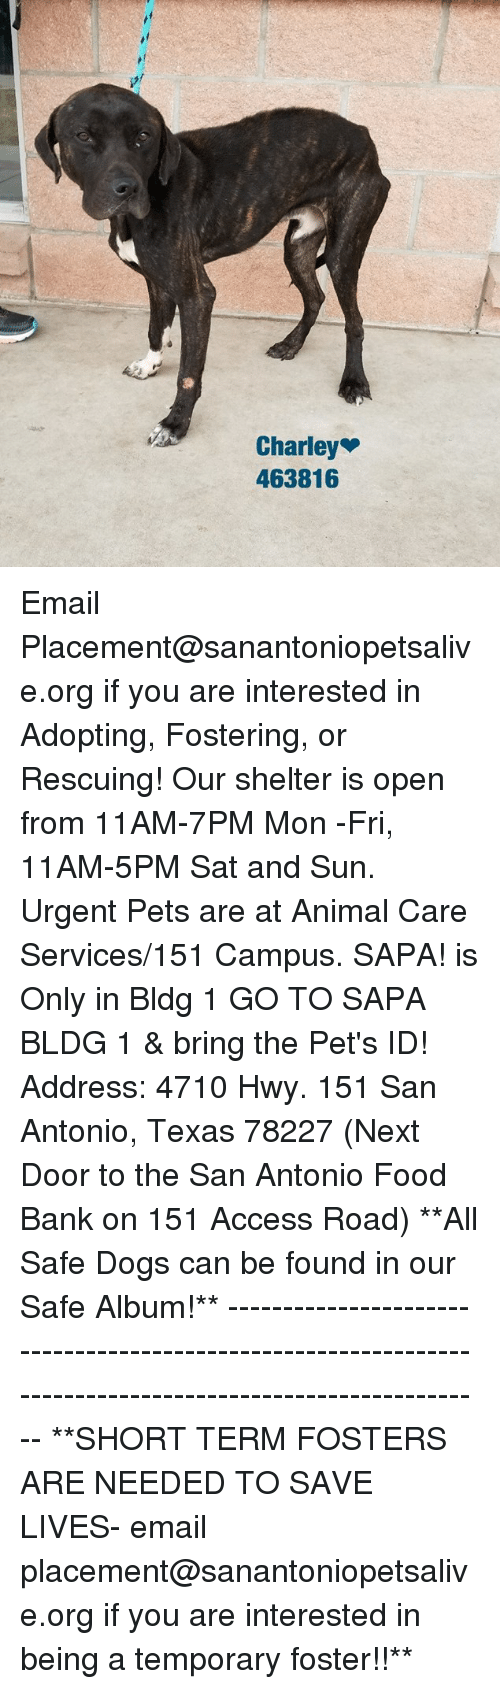 Dogs, Food, and Memes: Charley  463816 Email Placement@sanantoniopetsalive.org if you are interested in Adopting, Fostering, or Rescuing!  Our shelter is open from 11AM-7PM Mon -Fri, 11AM-5PM Sat and Sun.  Urgent Pets are at Animal Care Services/151 Campus. SAPA! is Only in Bldg 1 GO TO SAPA BLDG 1 & bring the Pet's ID! Address: 4710 Hwy. 151 San Antonio, Texas 78227 (Next Door to the San Antonio Food Bank on 151 Access Road)  **All Safe Dogs can be found in our Safe Album!** ---------------------------------------------------------------------------------------------------------- **SHORT TERM FOSTERS ARE NEEDED TO SAVE LIVES- email placement@sanantoniopetsalive.org if you are interested in being a temporary foster!!**